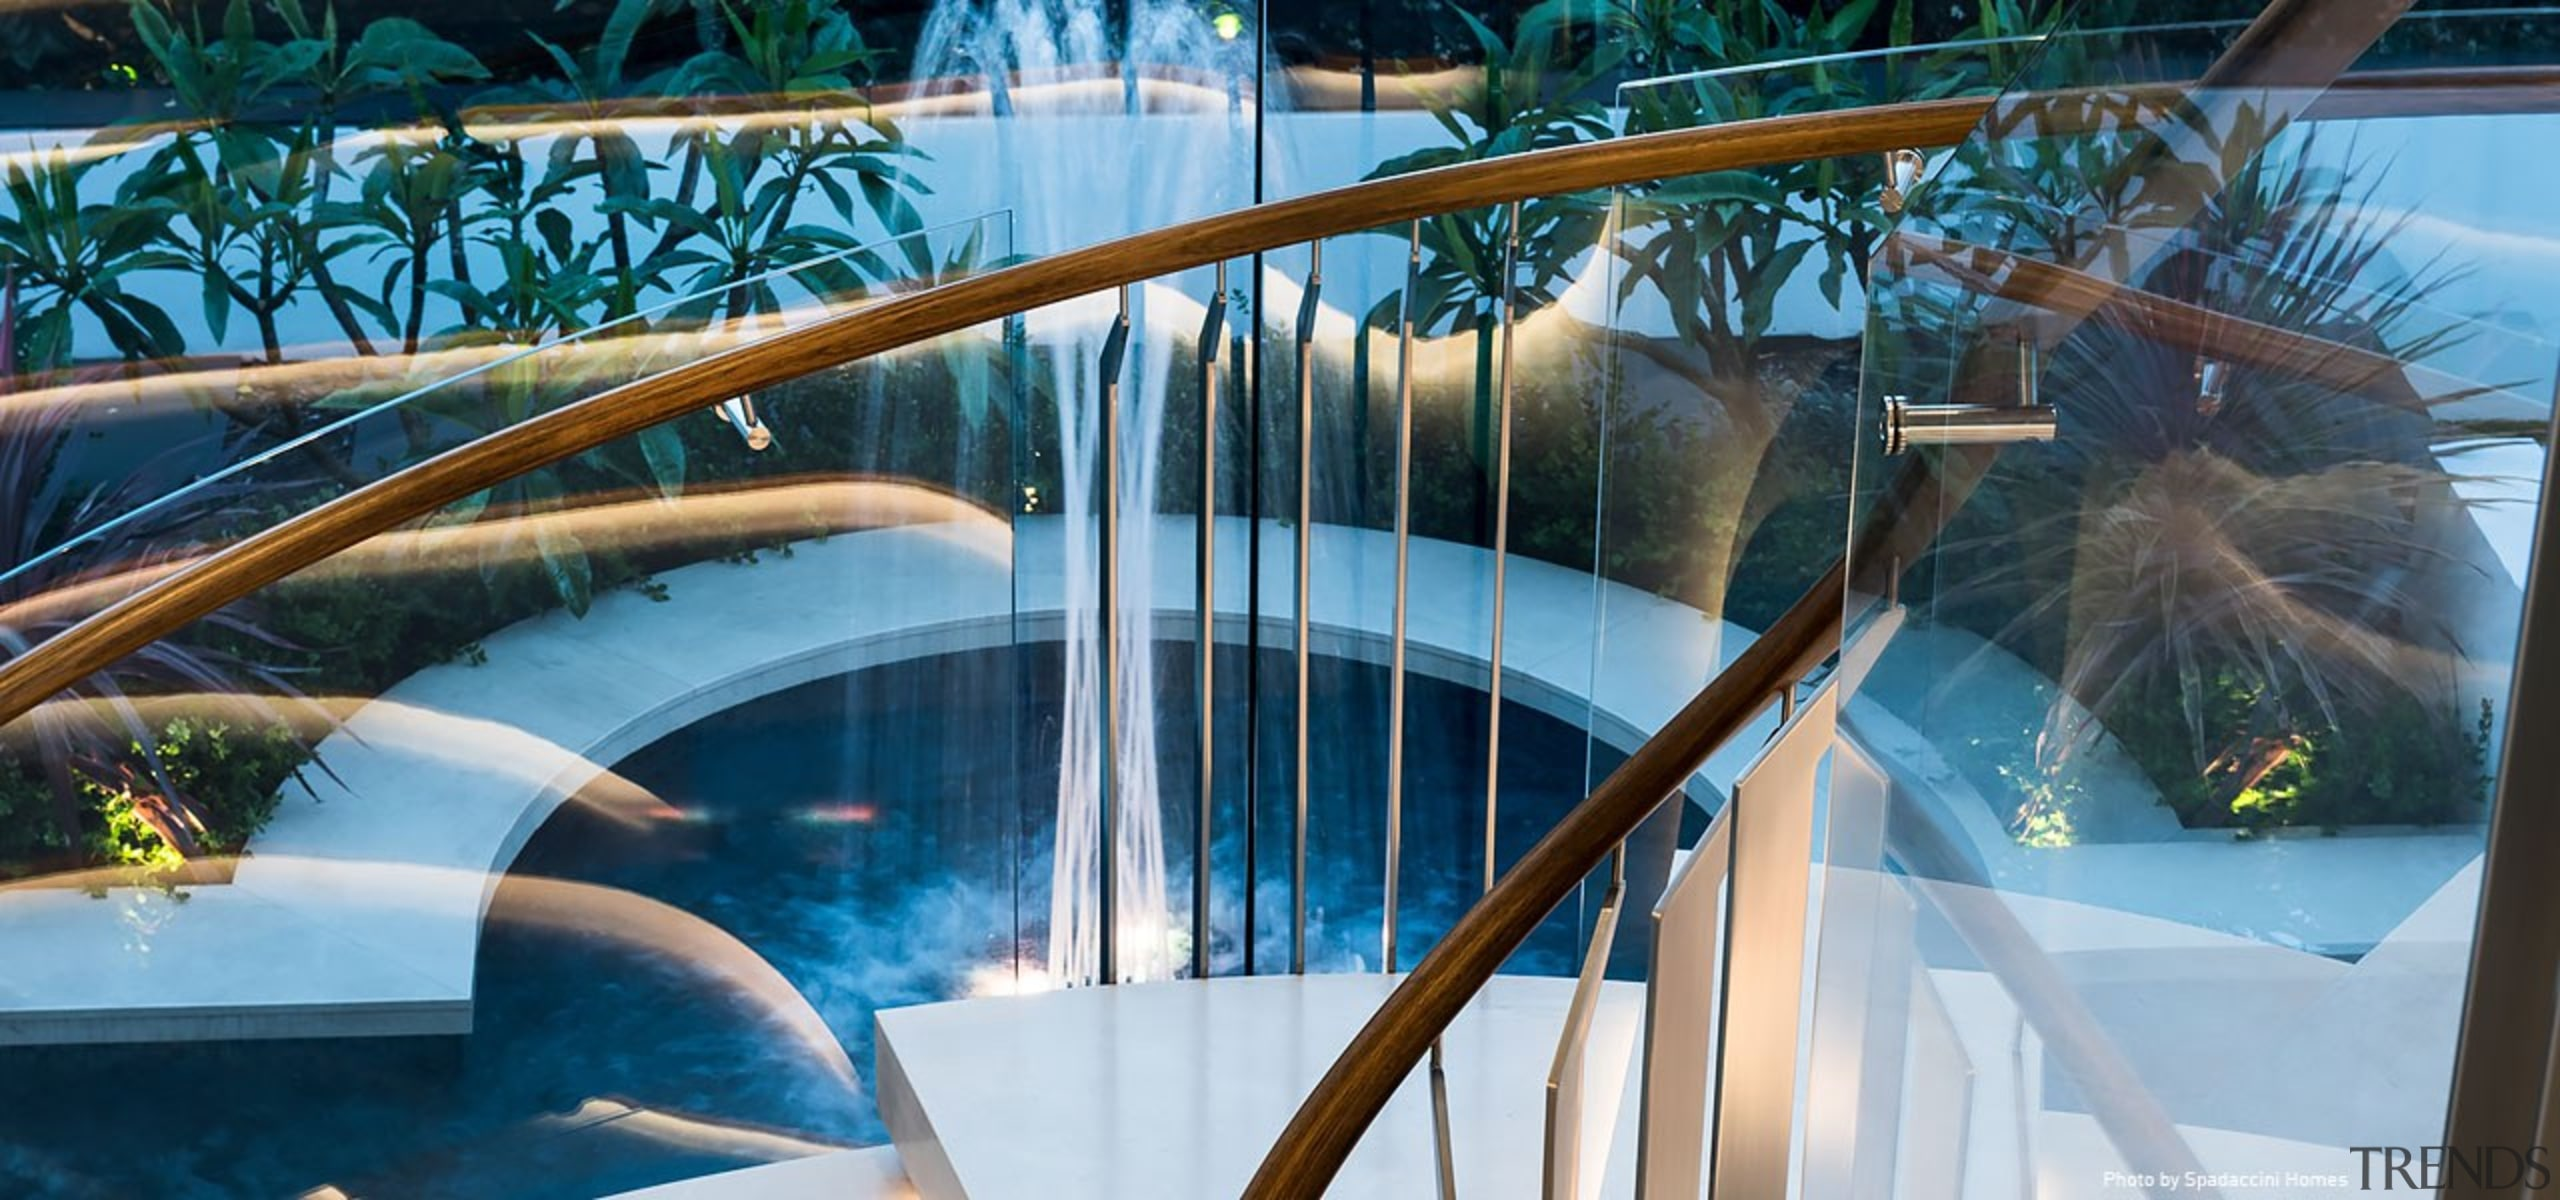 Sorrento Residence 4 - architecture | baluster | architecture, baluster, design, glass, handrail, leisure, real estate, stairs, swimming pool, water, water park, teal